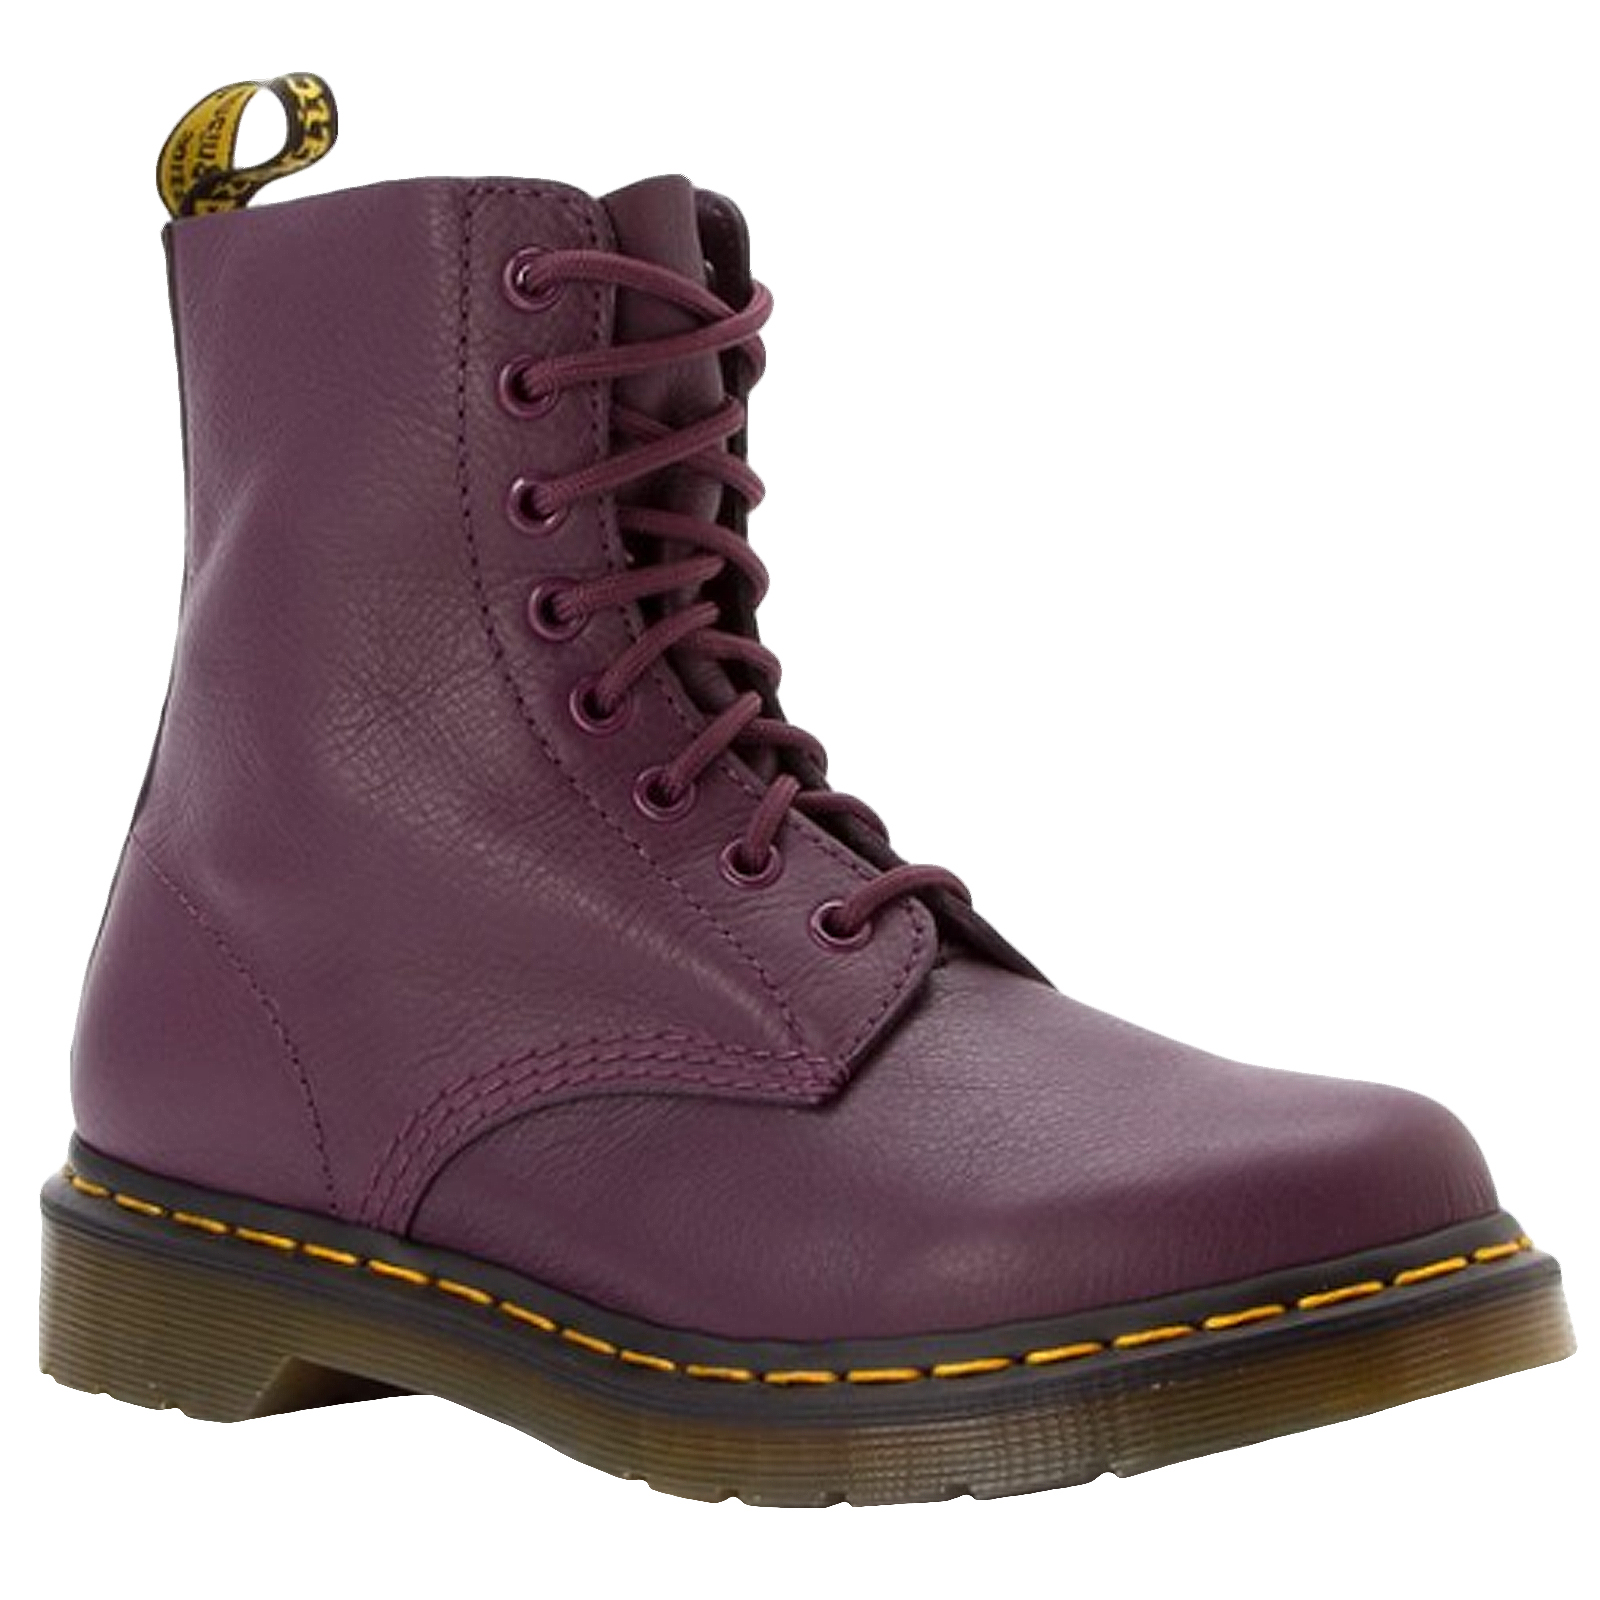 dr doc martens womens pascal virginia leather ankle boots shoes purple 8uk ebay. Black Bedroom Furniture Sets. Home Design Ideas